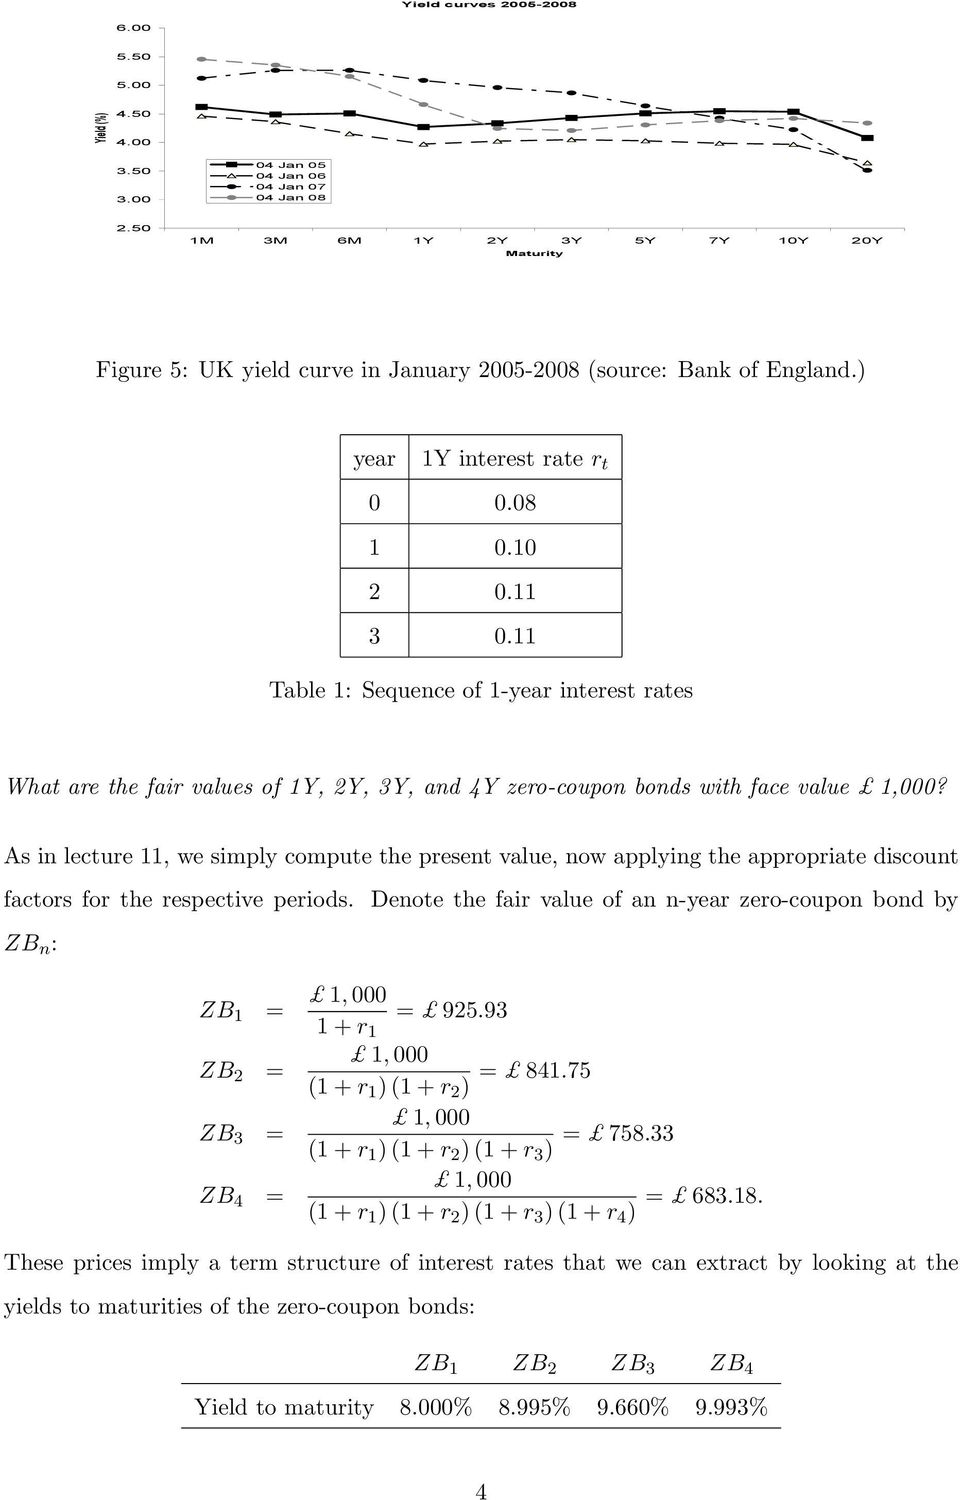 As in lecture 11, we simply compute the present value, now applying the appropriate discount factors for the respective periods.